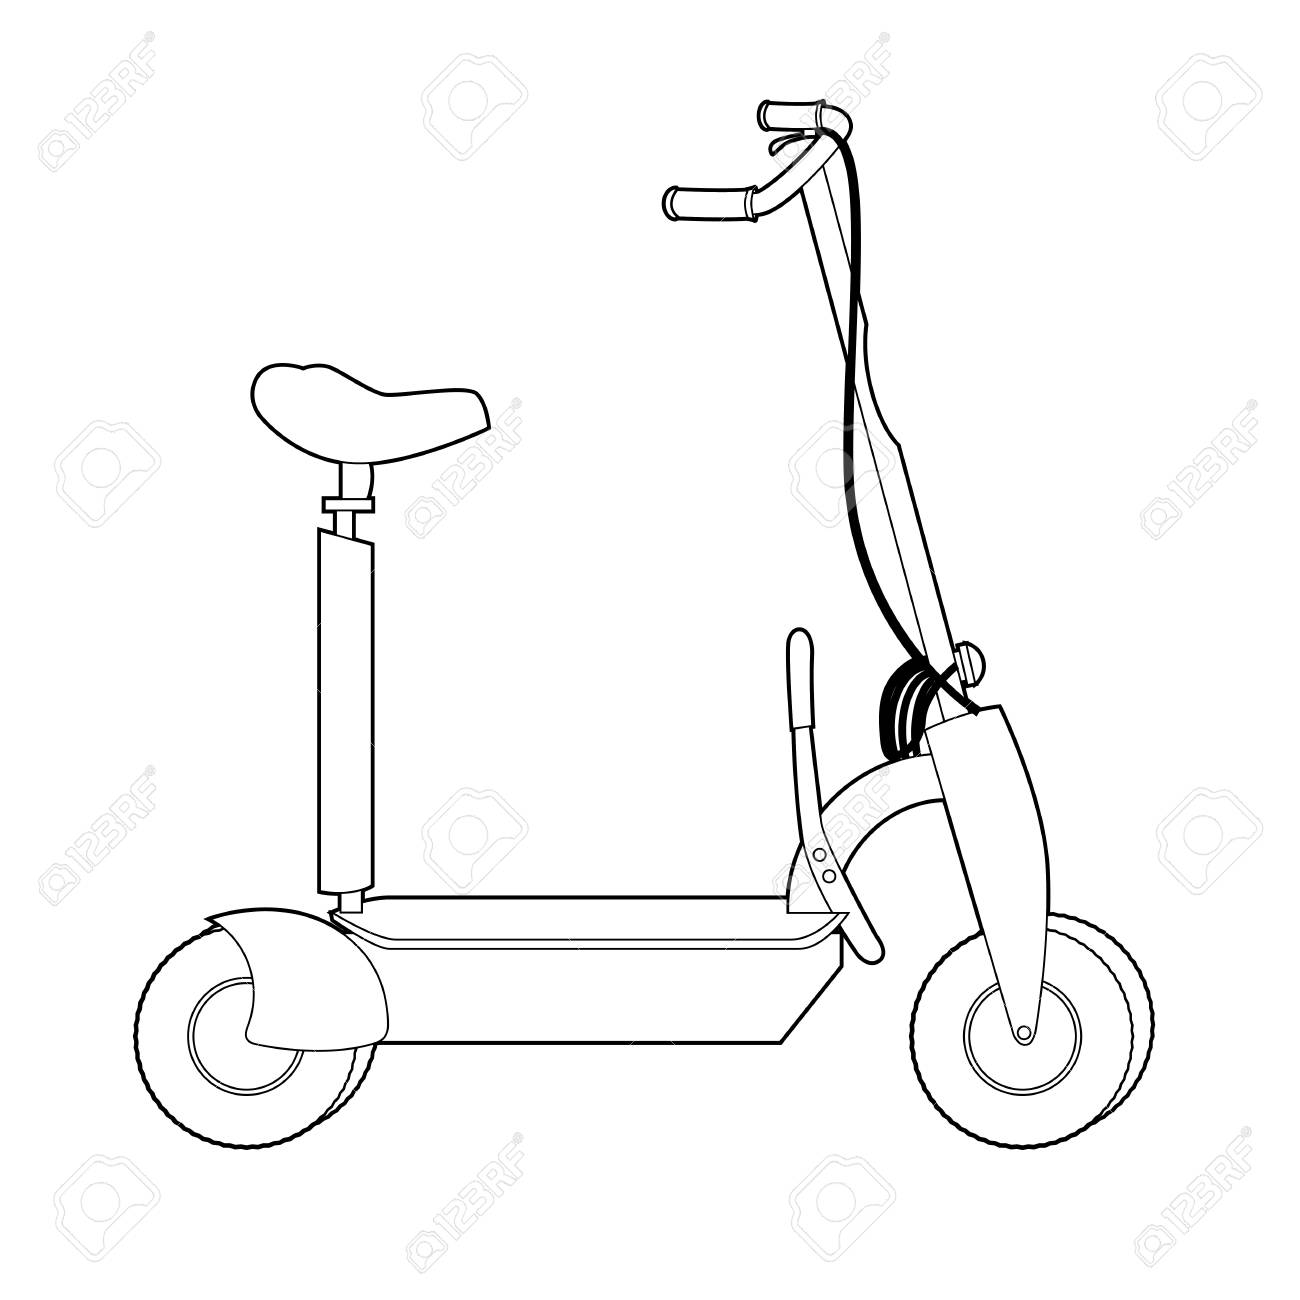 Electric Scooter Line Icon Wheel Scooter Royalty Free Cliparts Vectors And Stock Illustration Image 101064404